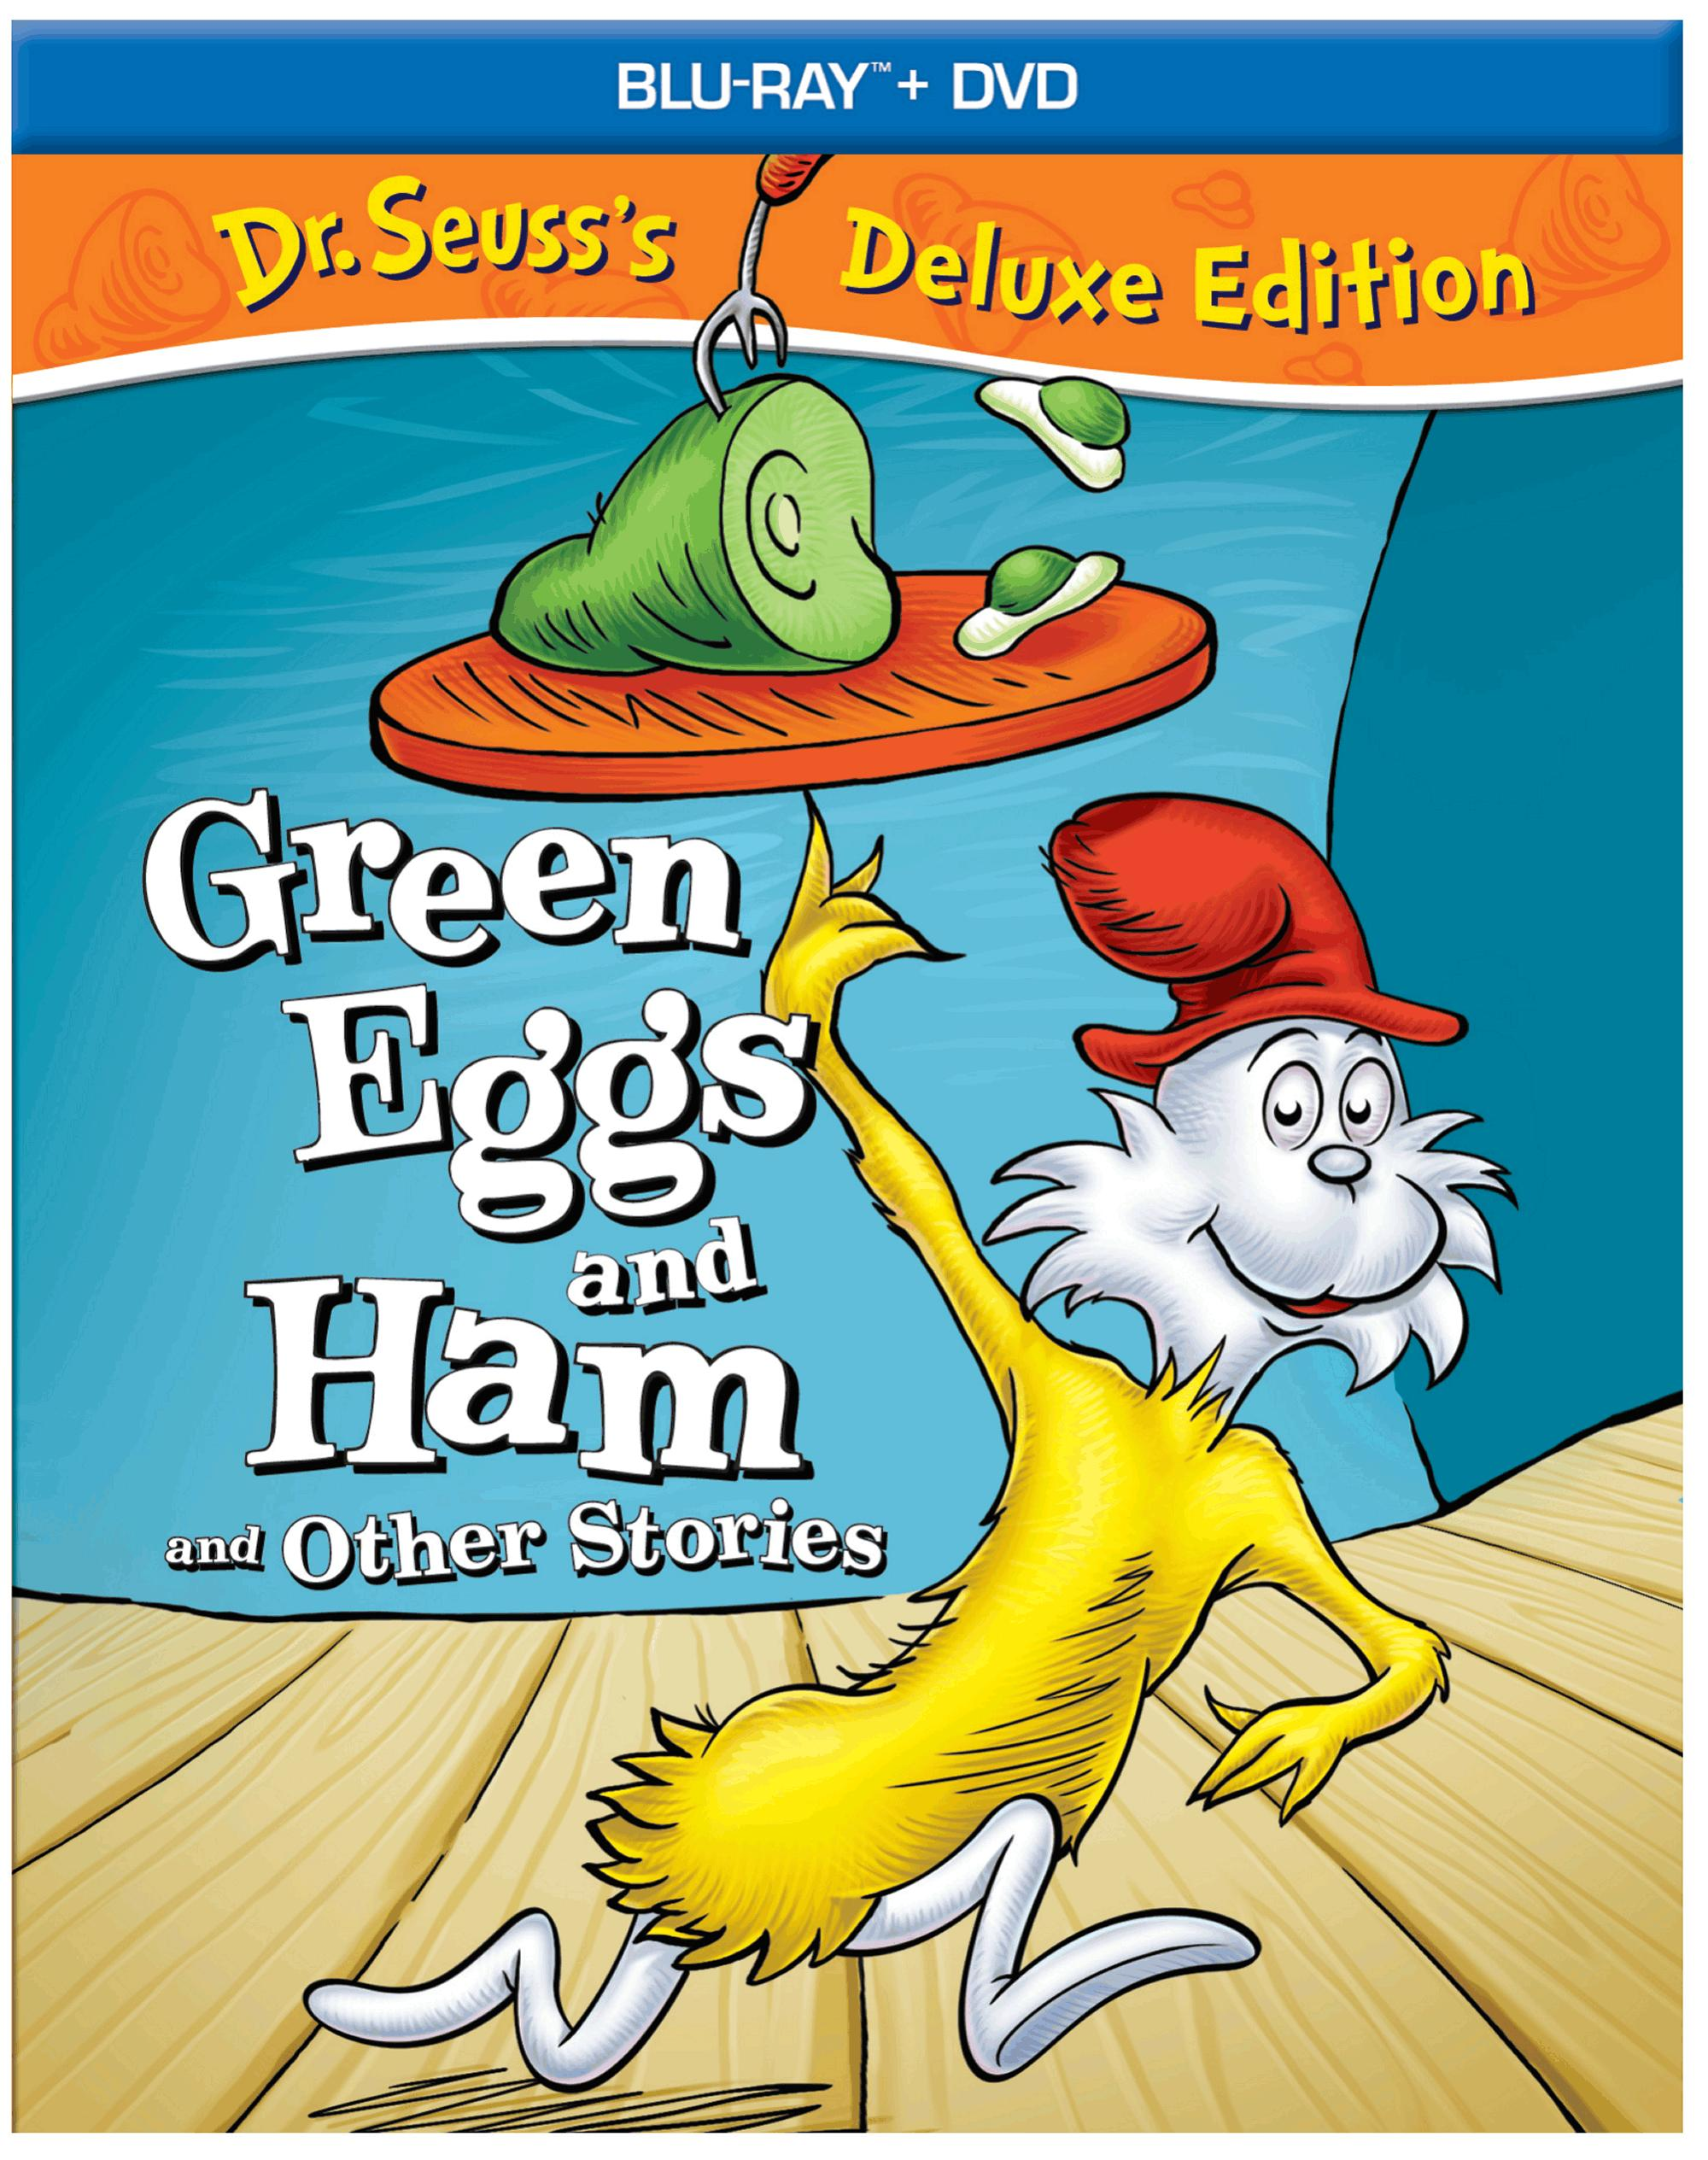 Dr. Seuss Green Eggs and Ham Other Stories Deluxe Edition 2D Box Art ...